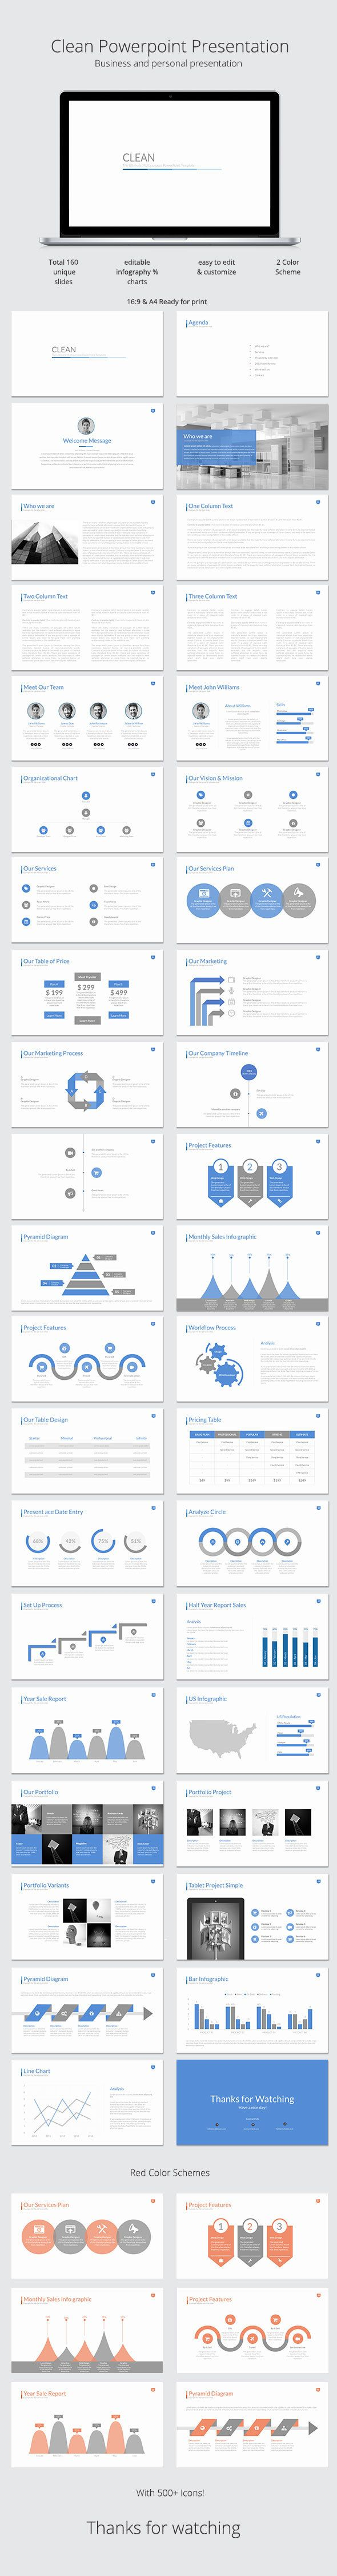 Coolmathgamesus  Nice  Ideas About Powerpoint Presentations On Pinterest With Outstanding Clean Powerpoint Template With Adorable Scoreboard Template For Powerpoint Also Powerpoint To Download In Addition Free Powerpoint Download Mac And Powerpoint Insert Slide As Well As Avoiding Plagiarism Powerpoint Additionally Immanuel Kant Powerpoint From Pinterestcom With Coolmathgamesus  Outstanding  Ideas About Powerpoint Presentations On Pinterest With Adorable Clean Powerpoint Template And Nice Scoreboard Template For Powerpoint Also Powerpoint To Download In Addition Free Powerpoint Download Mac From Pinterestcom